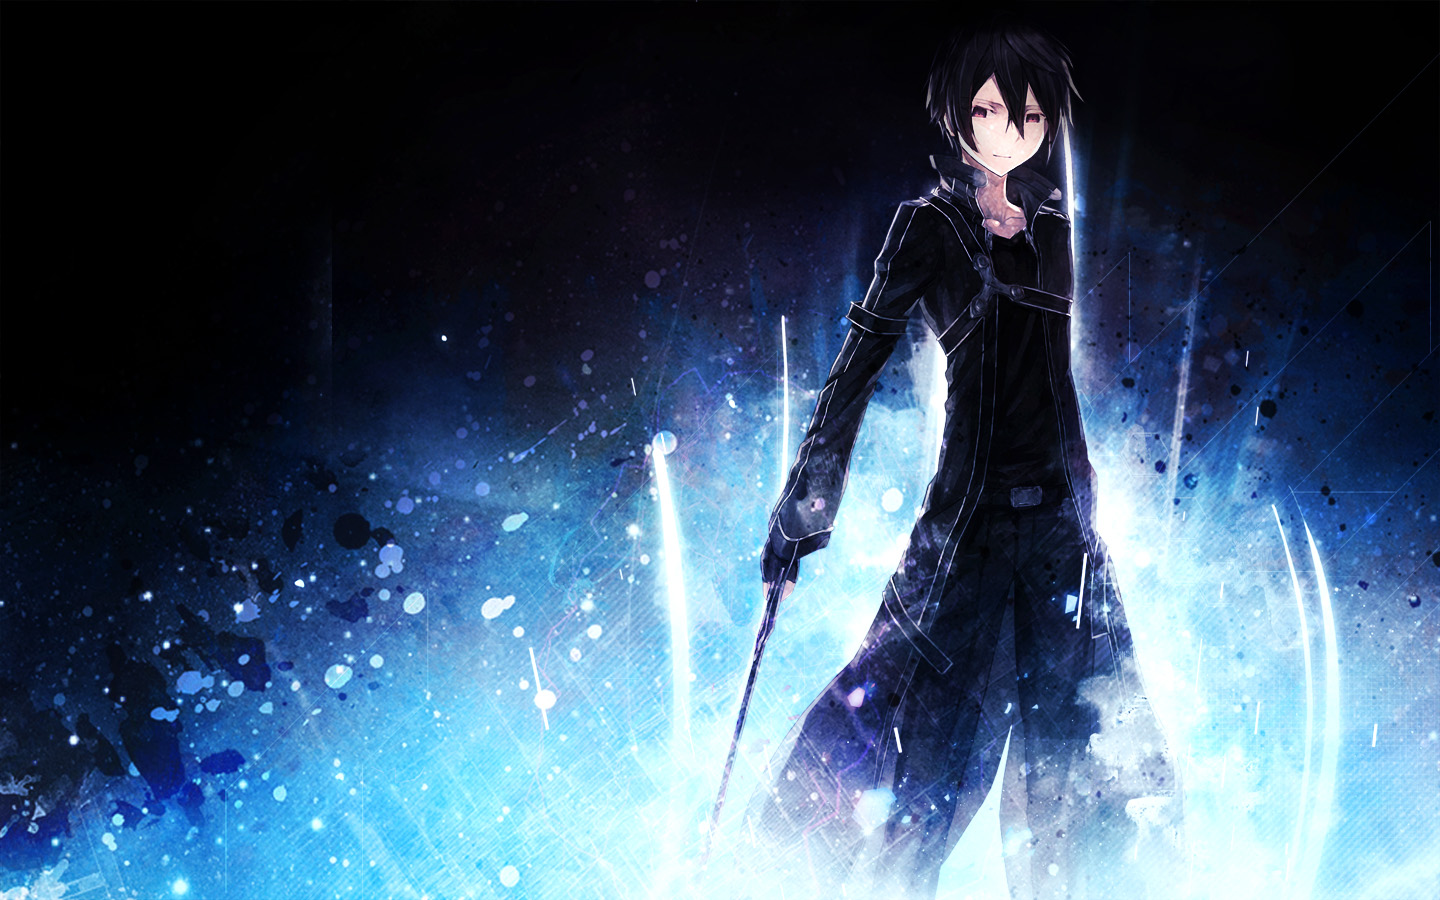 sword art online wallpaper download